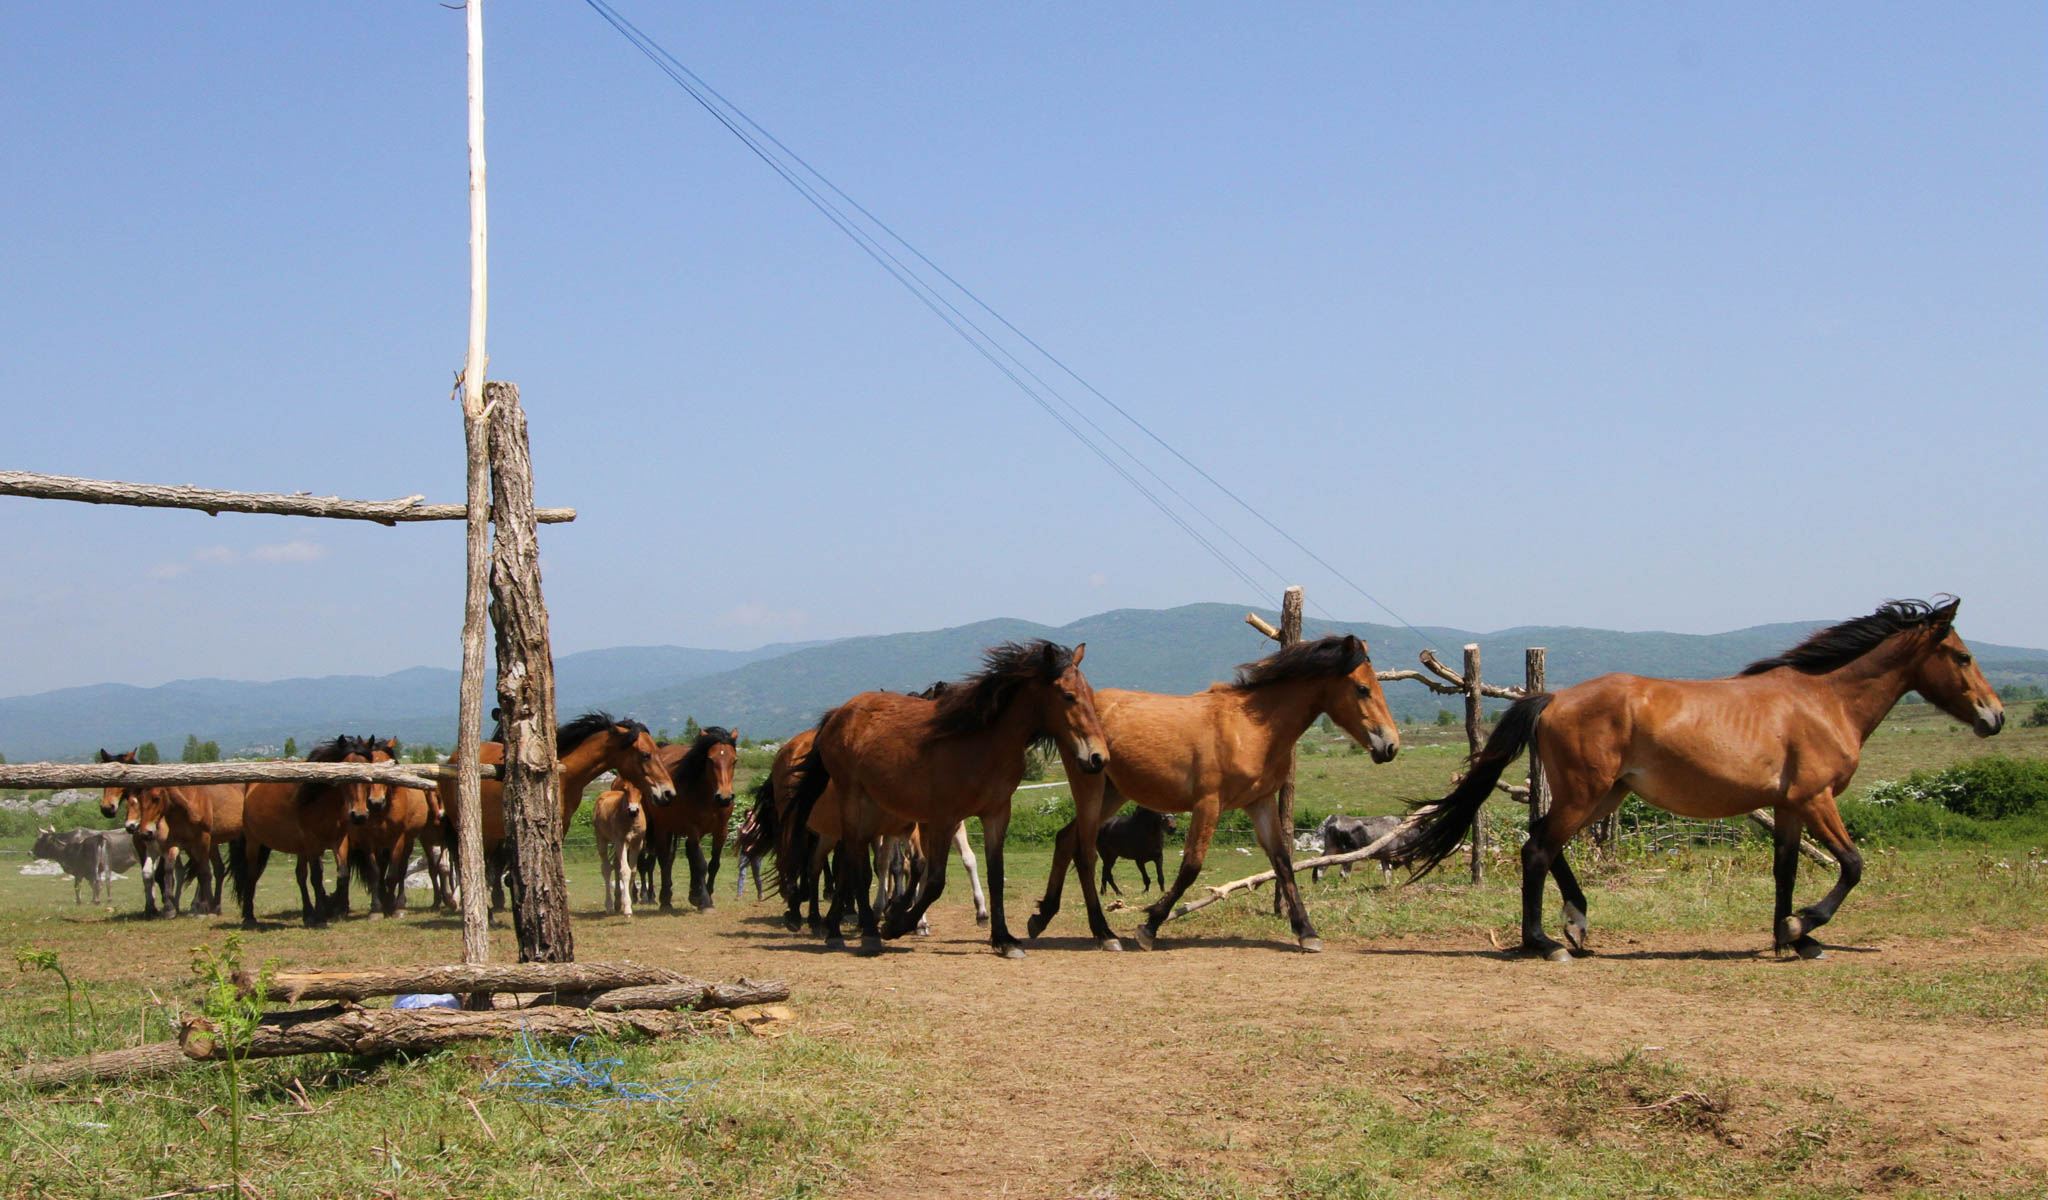 Wild Bosnian mountain horse release in the Velebit rewilding area, on May 19, 2015